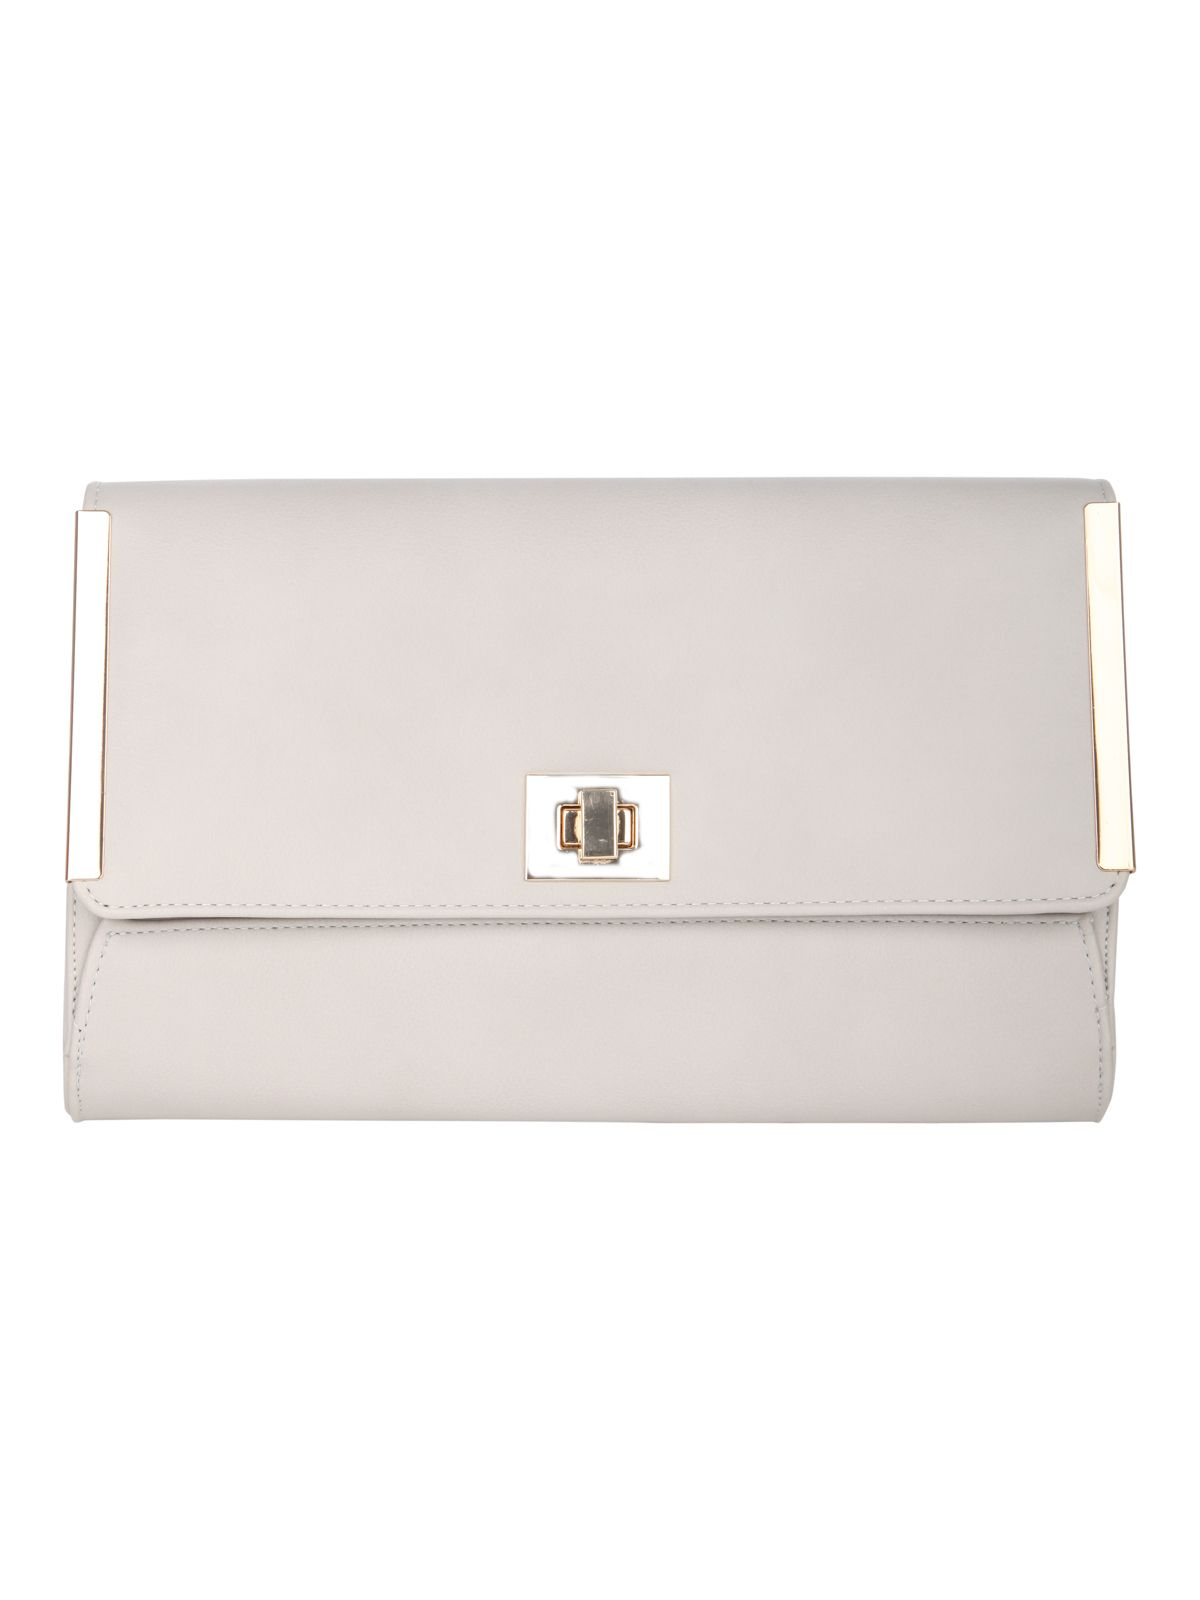 Twist lock metal trim clutch bag